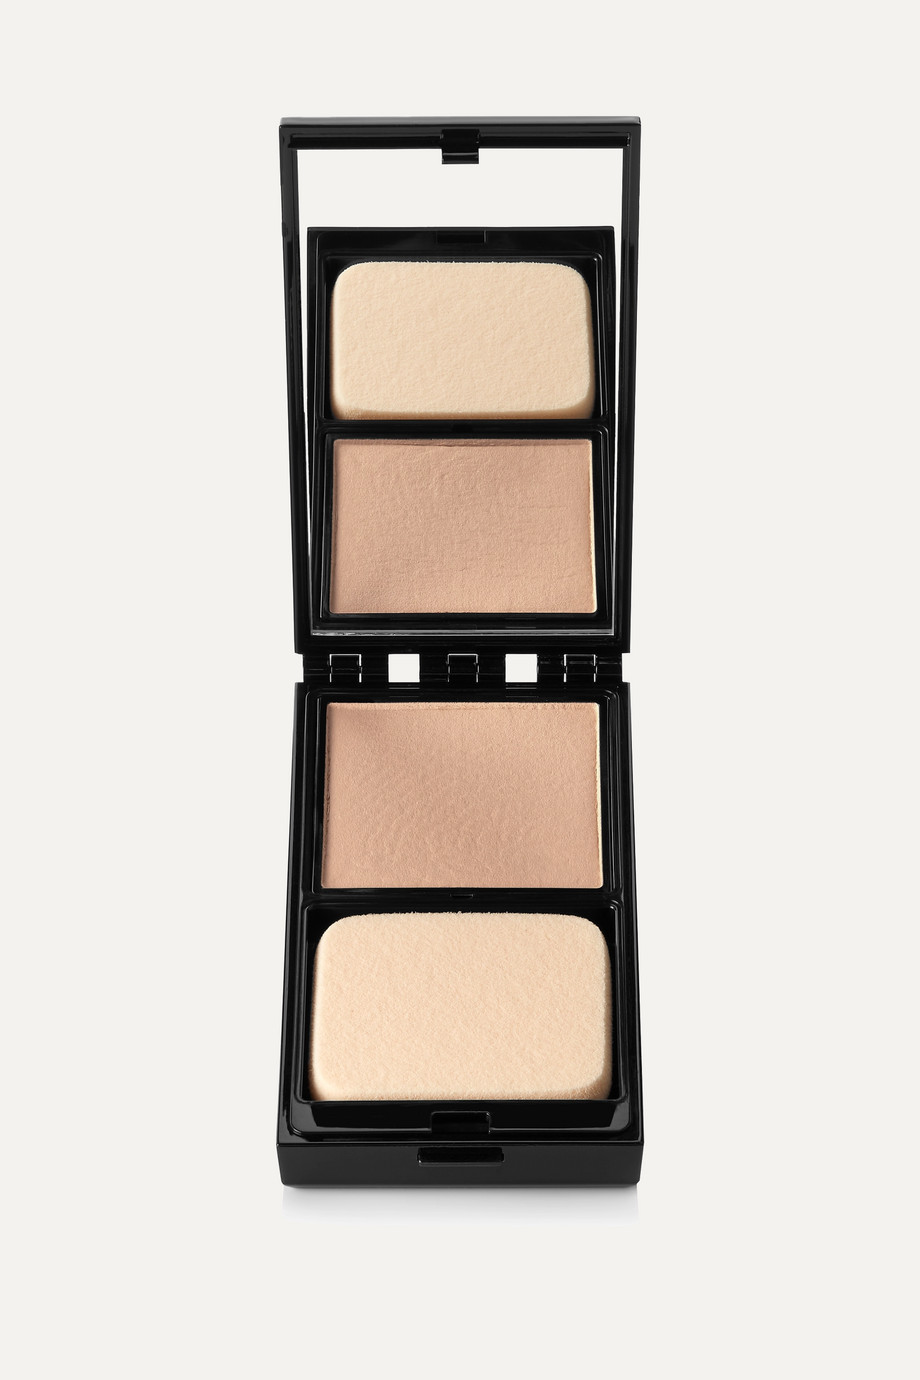 Serge Lutens Teint Si Fin Compact Foundation – B40 – Foundation